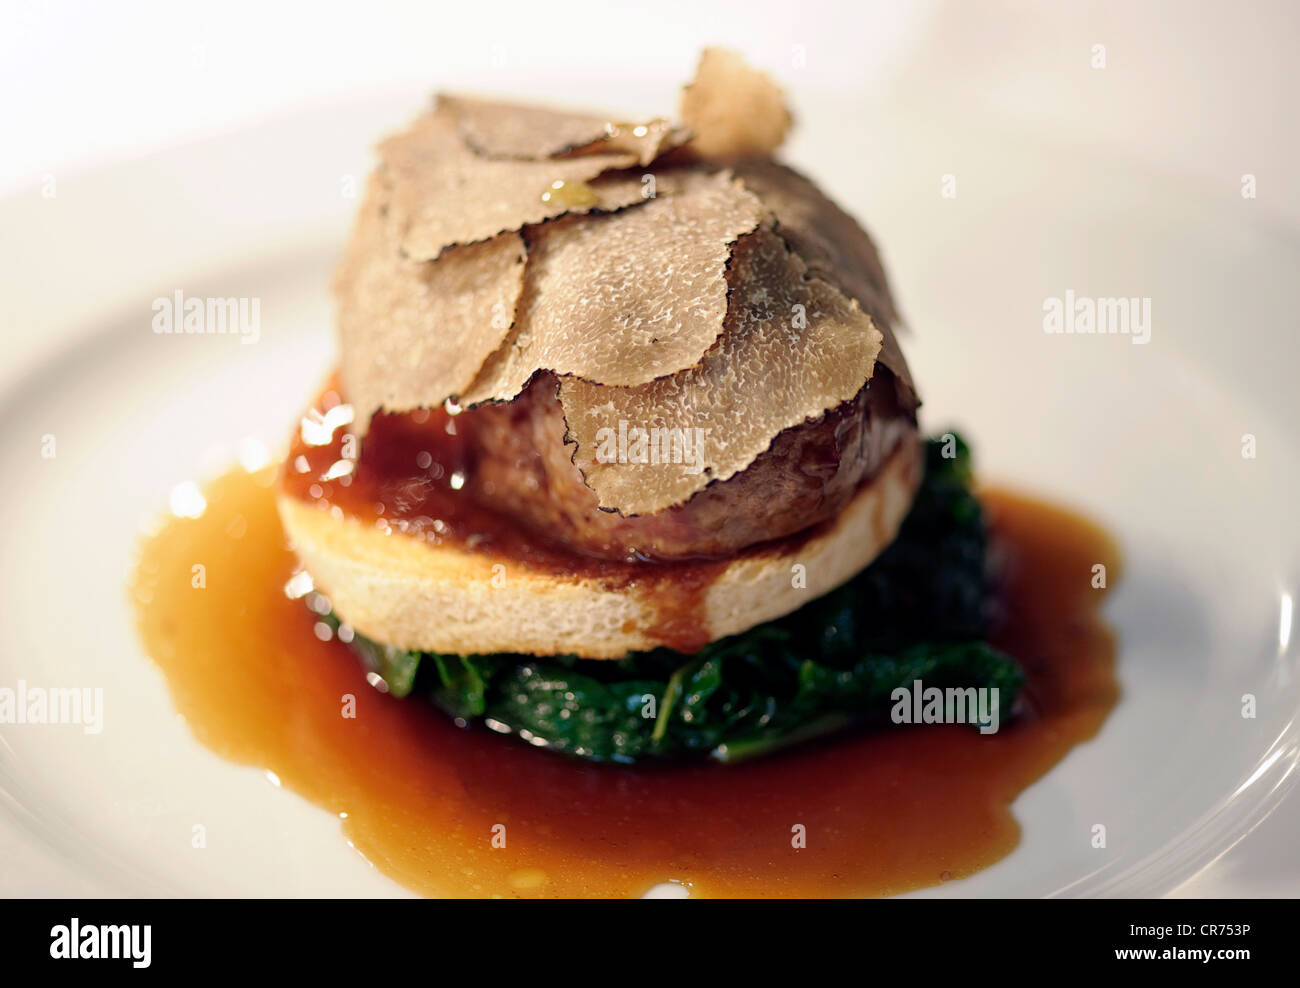 posh expensive restaurant meal with truffles and sauce - Stock Image